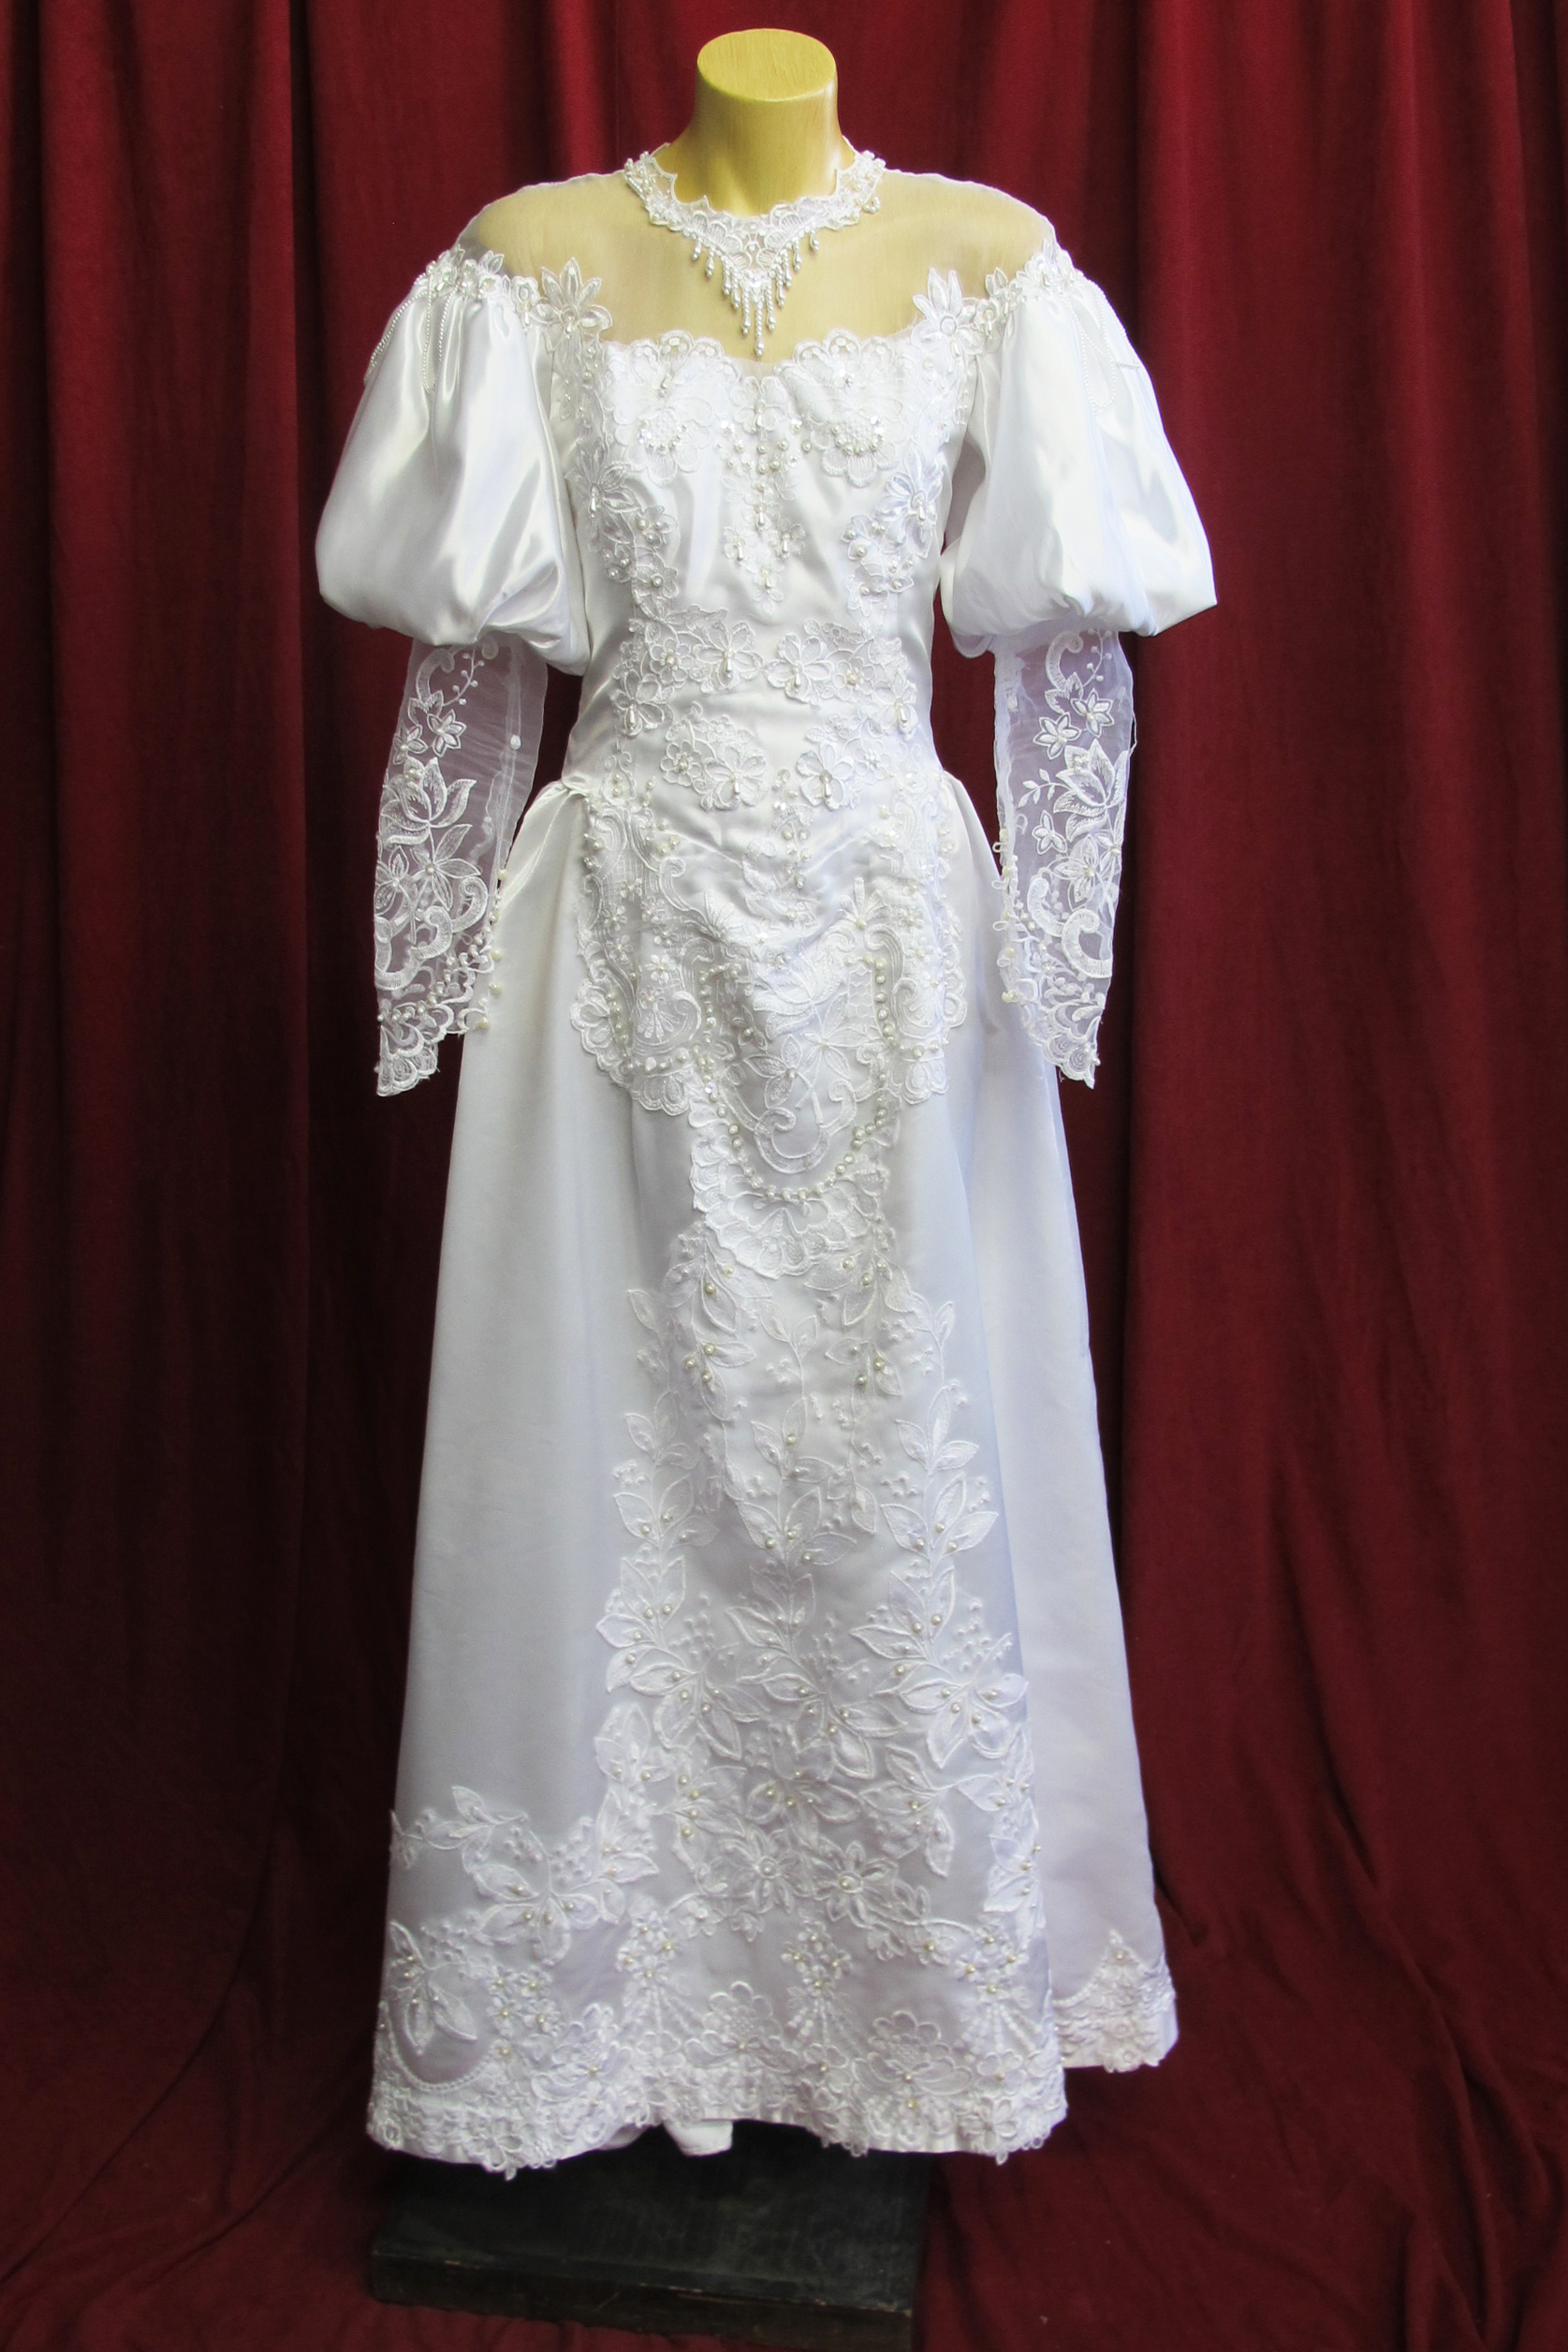 Wedding Dress Victorian Style Mutton Chop Sleeves sz. 8 45320140